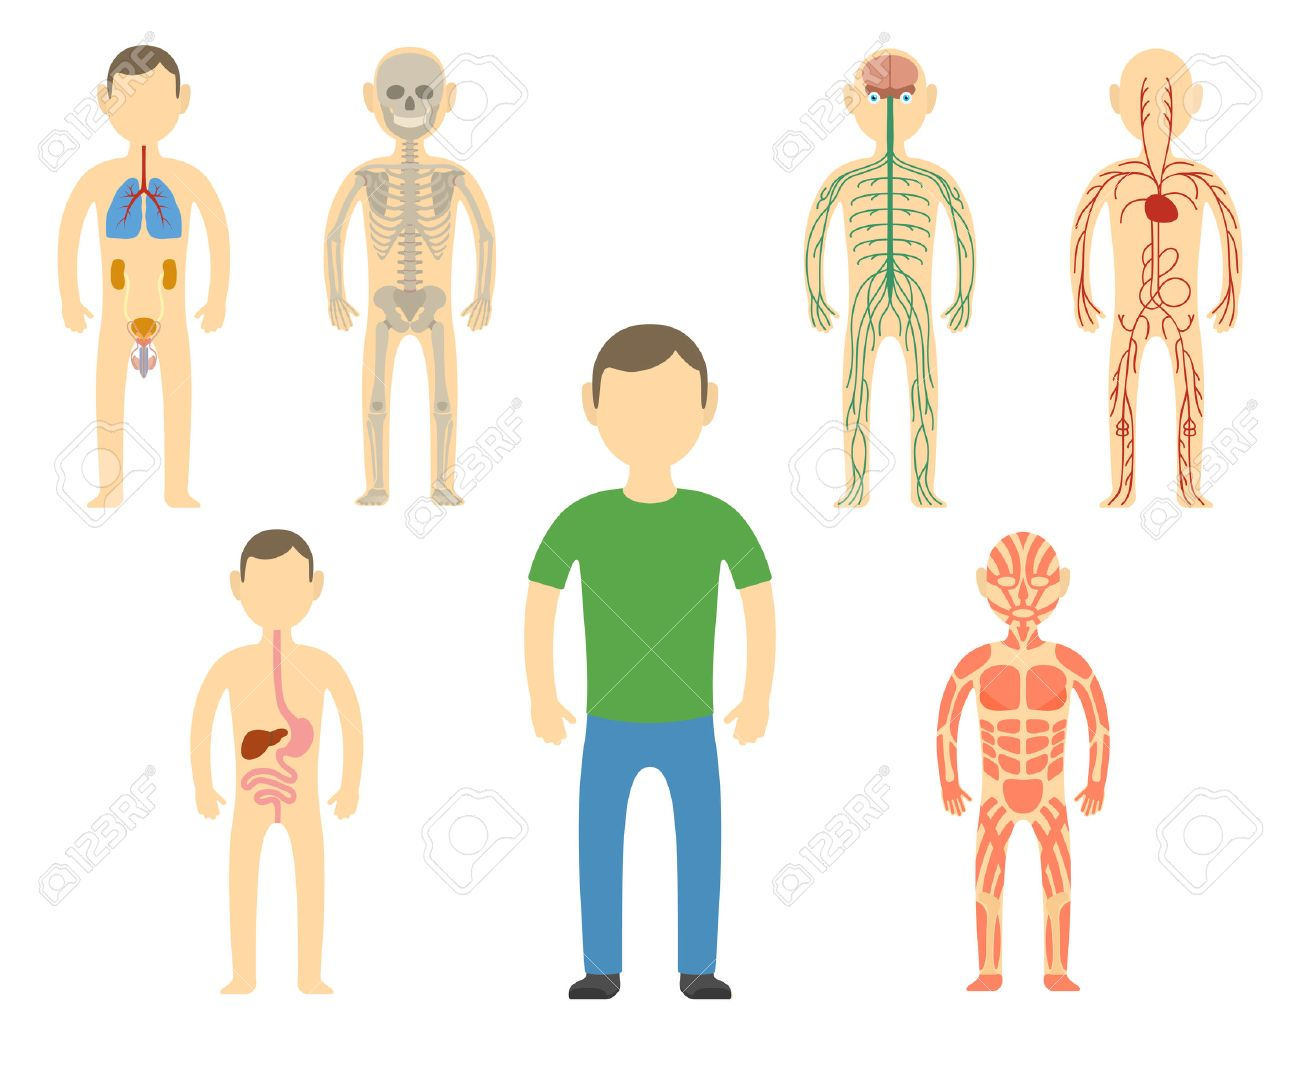 Cartoon man body anatomy. All body systems - Urogenital, Respiratory, Nervous, Circulatory, Skeleton, Digestive and Muscular systems. Vector illustration - 54881576